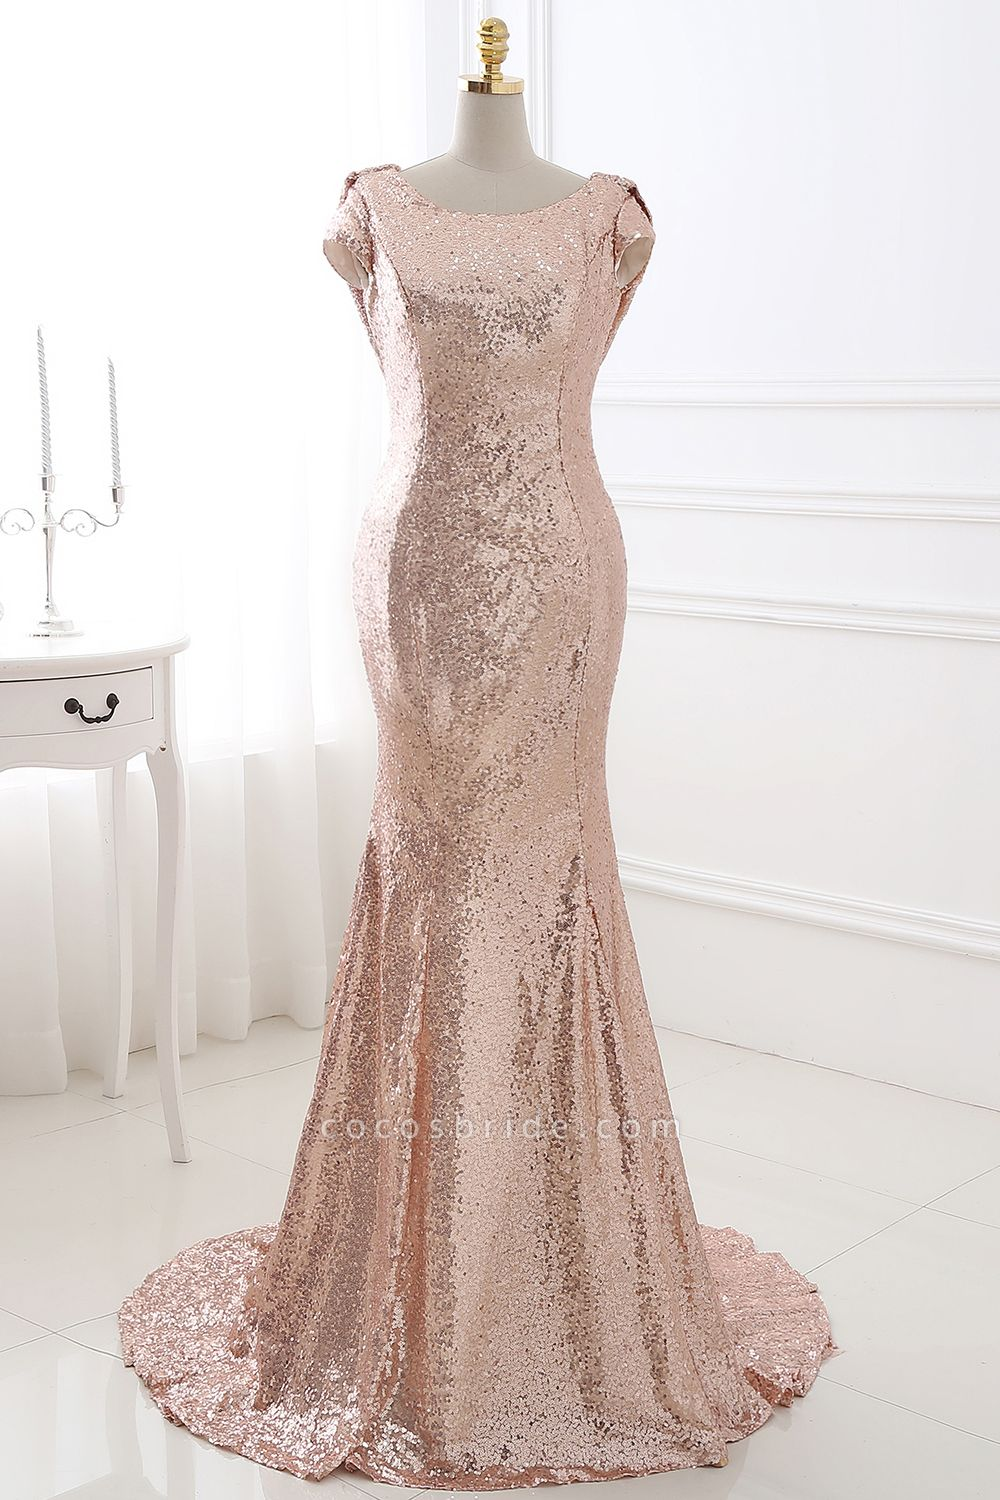 COURTNEY | Fit and Flare Sweep train Sequined Rosy Golden Prom Dress